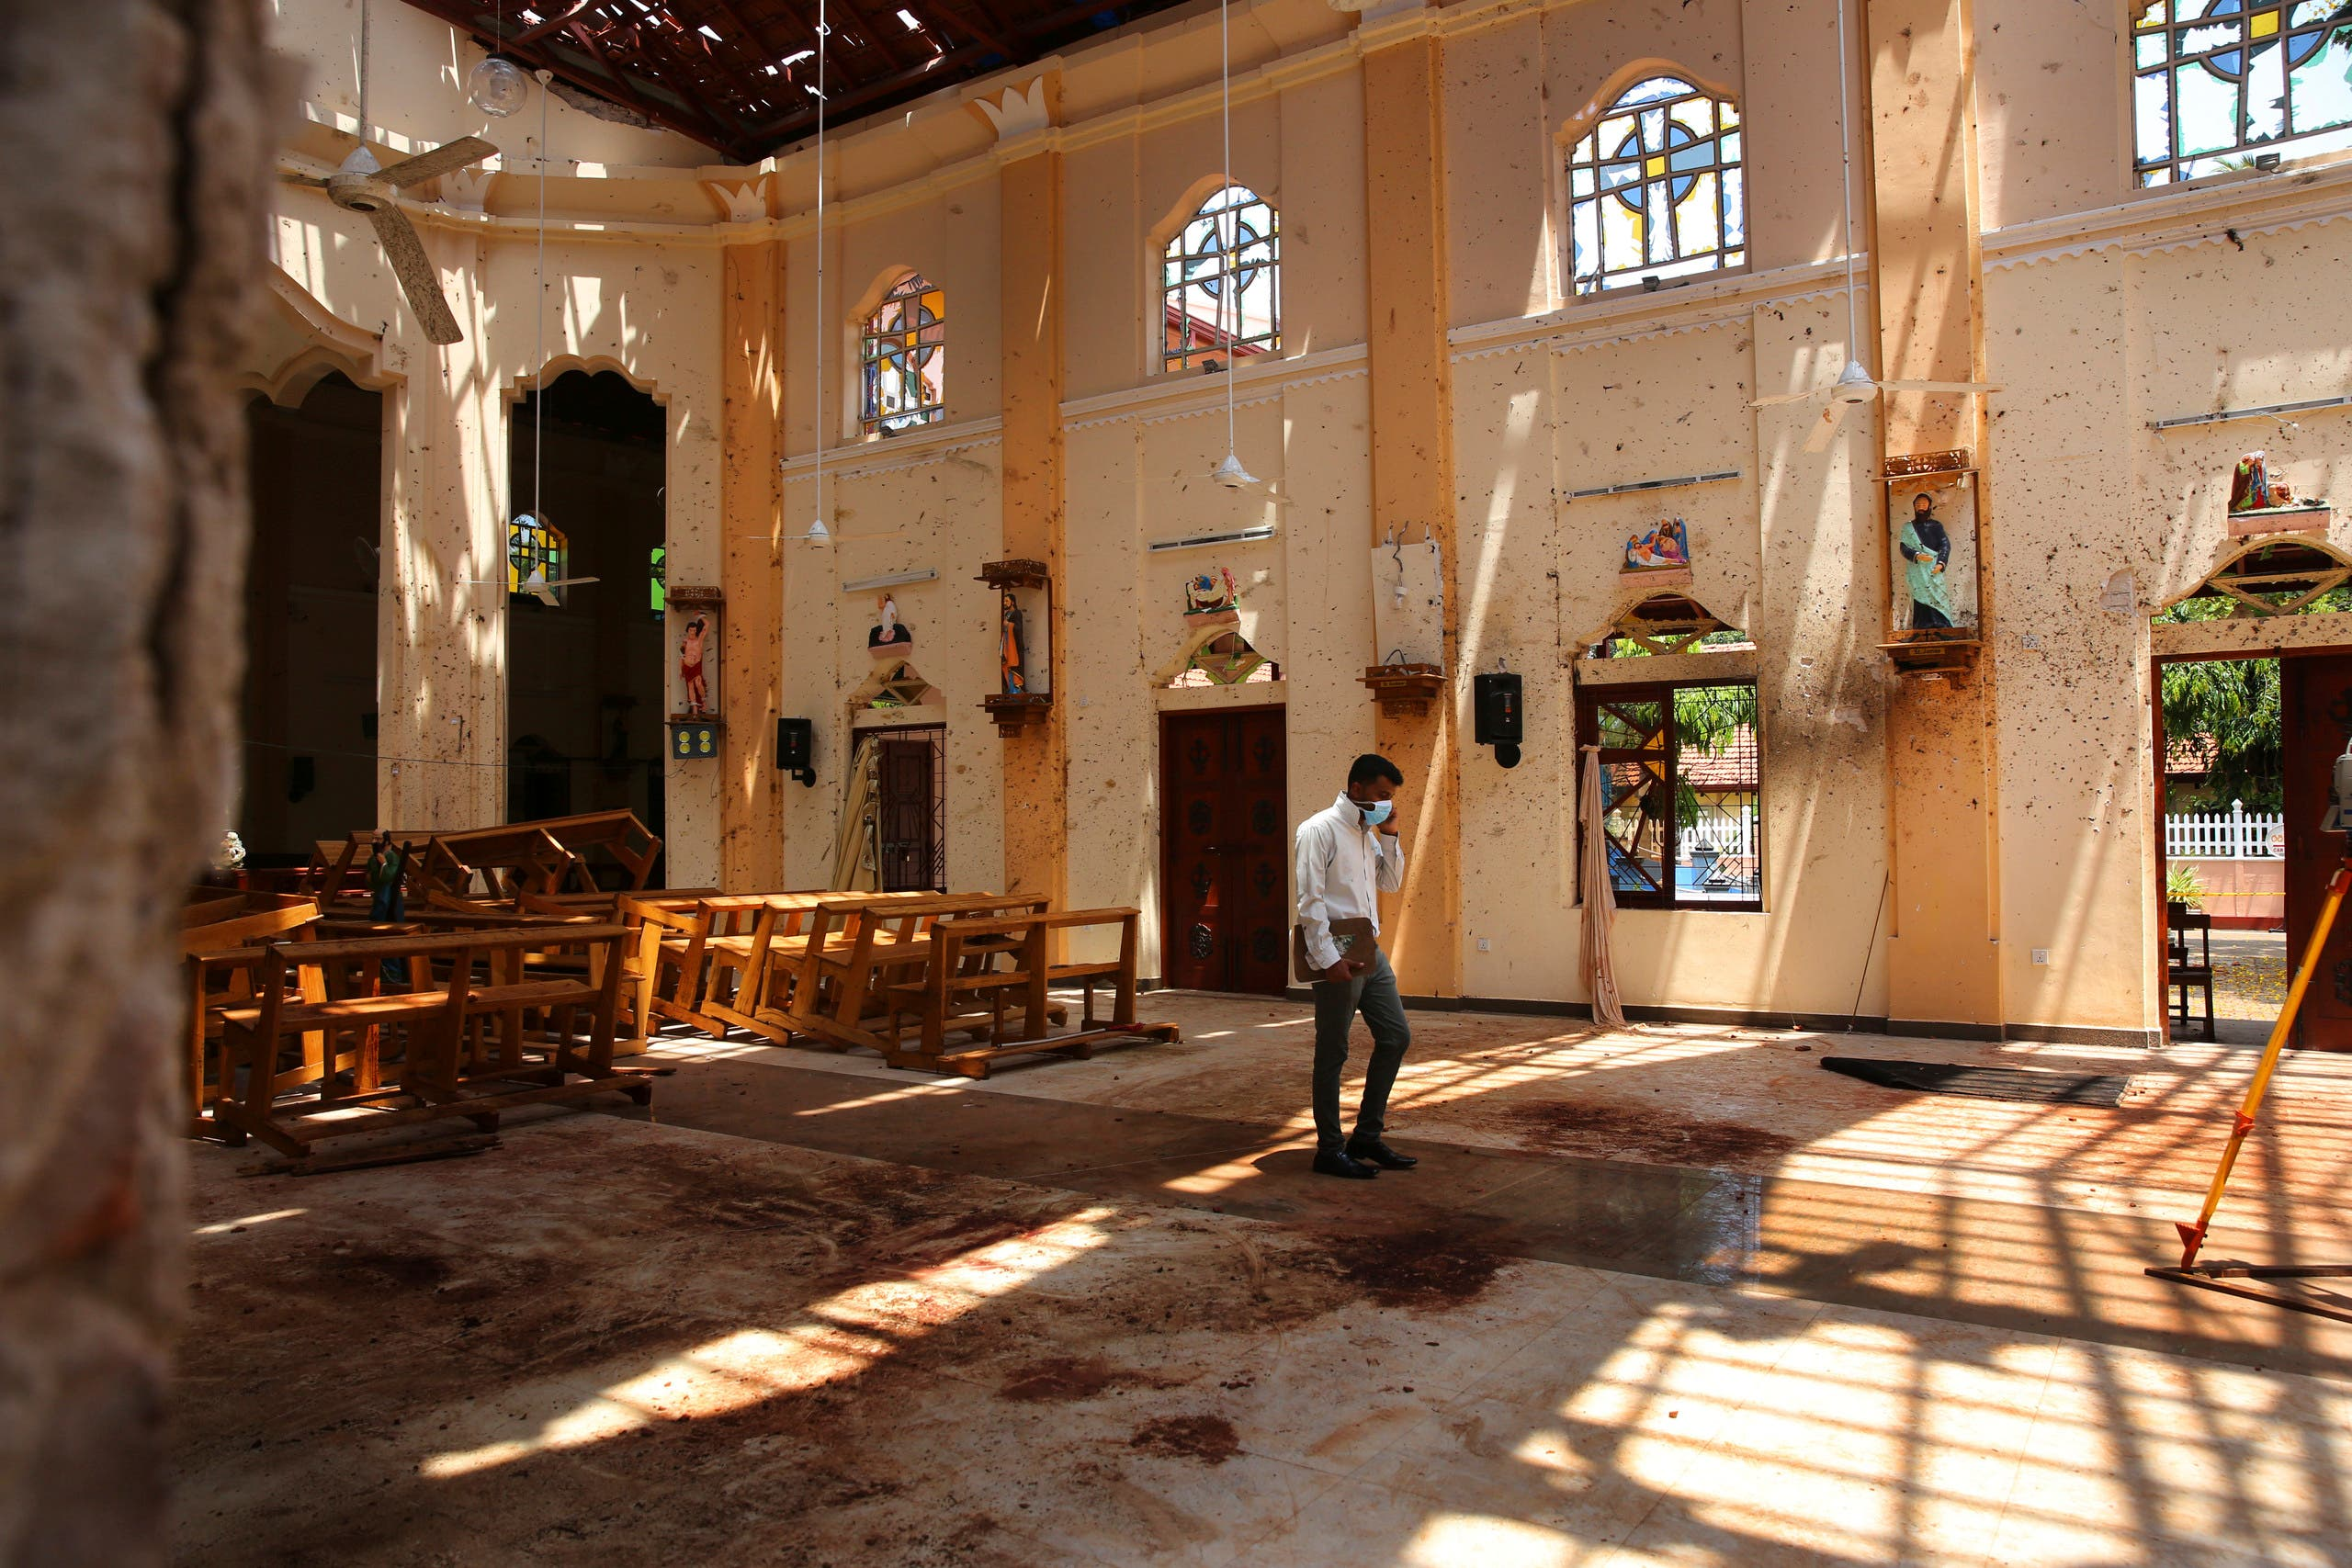 n this Thursday, April 25, 2019 photo, a surveyor walks inside the damaged St. Sebastian's Church where a suicide bomber blew himself up on Sunday Easter in Negombo, north of Colombo, Sri Lanka. (AP)